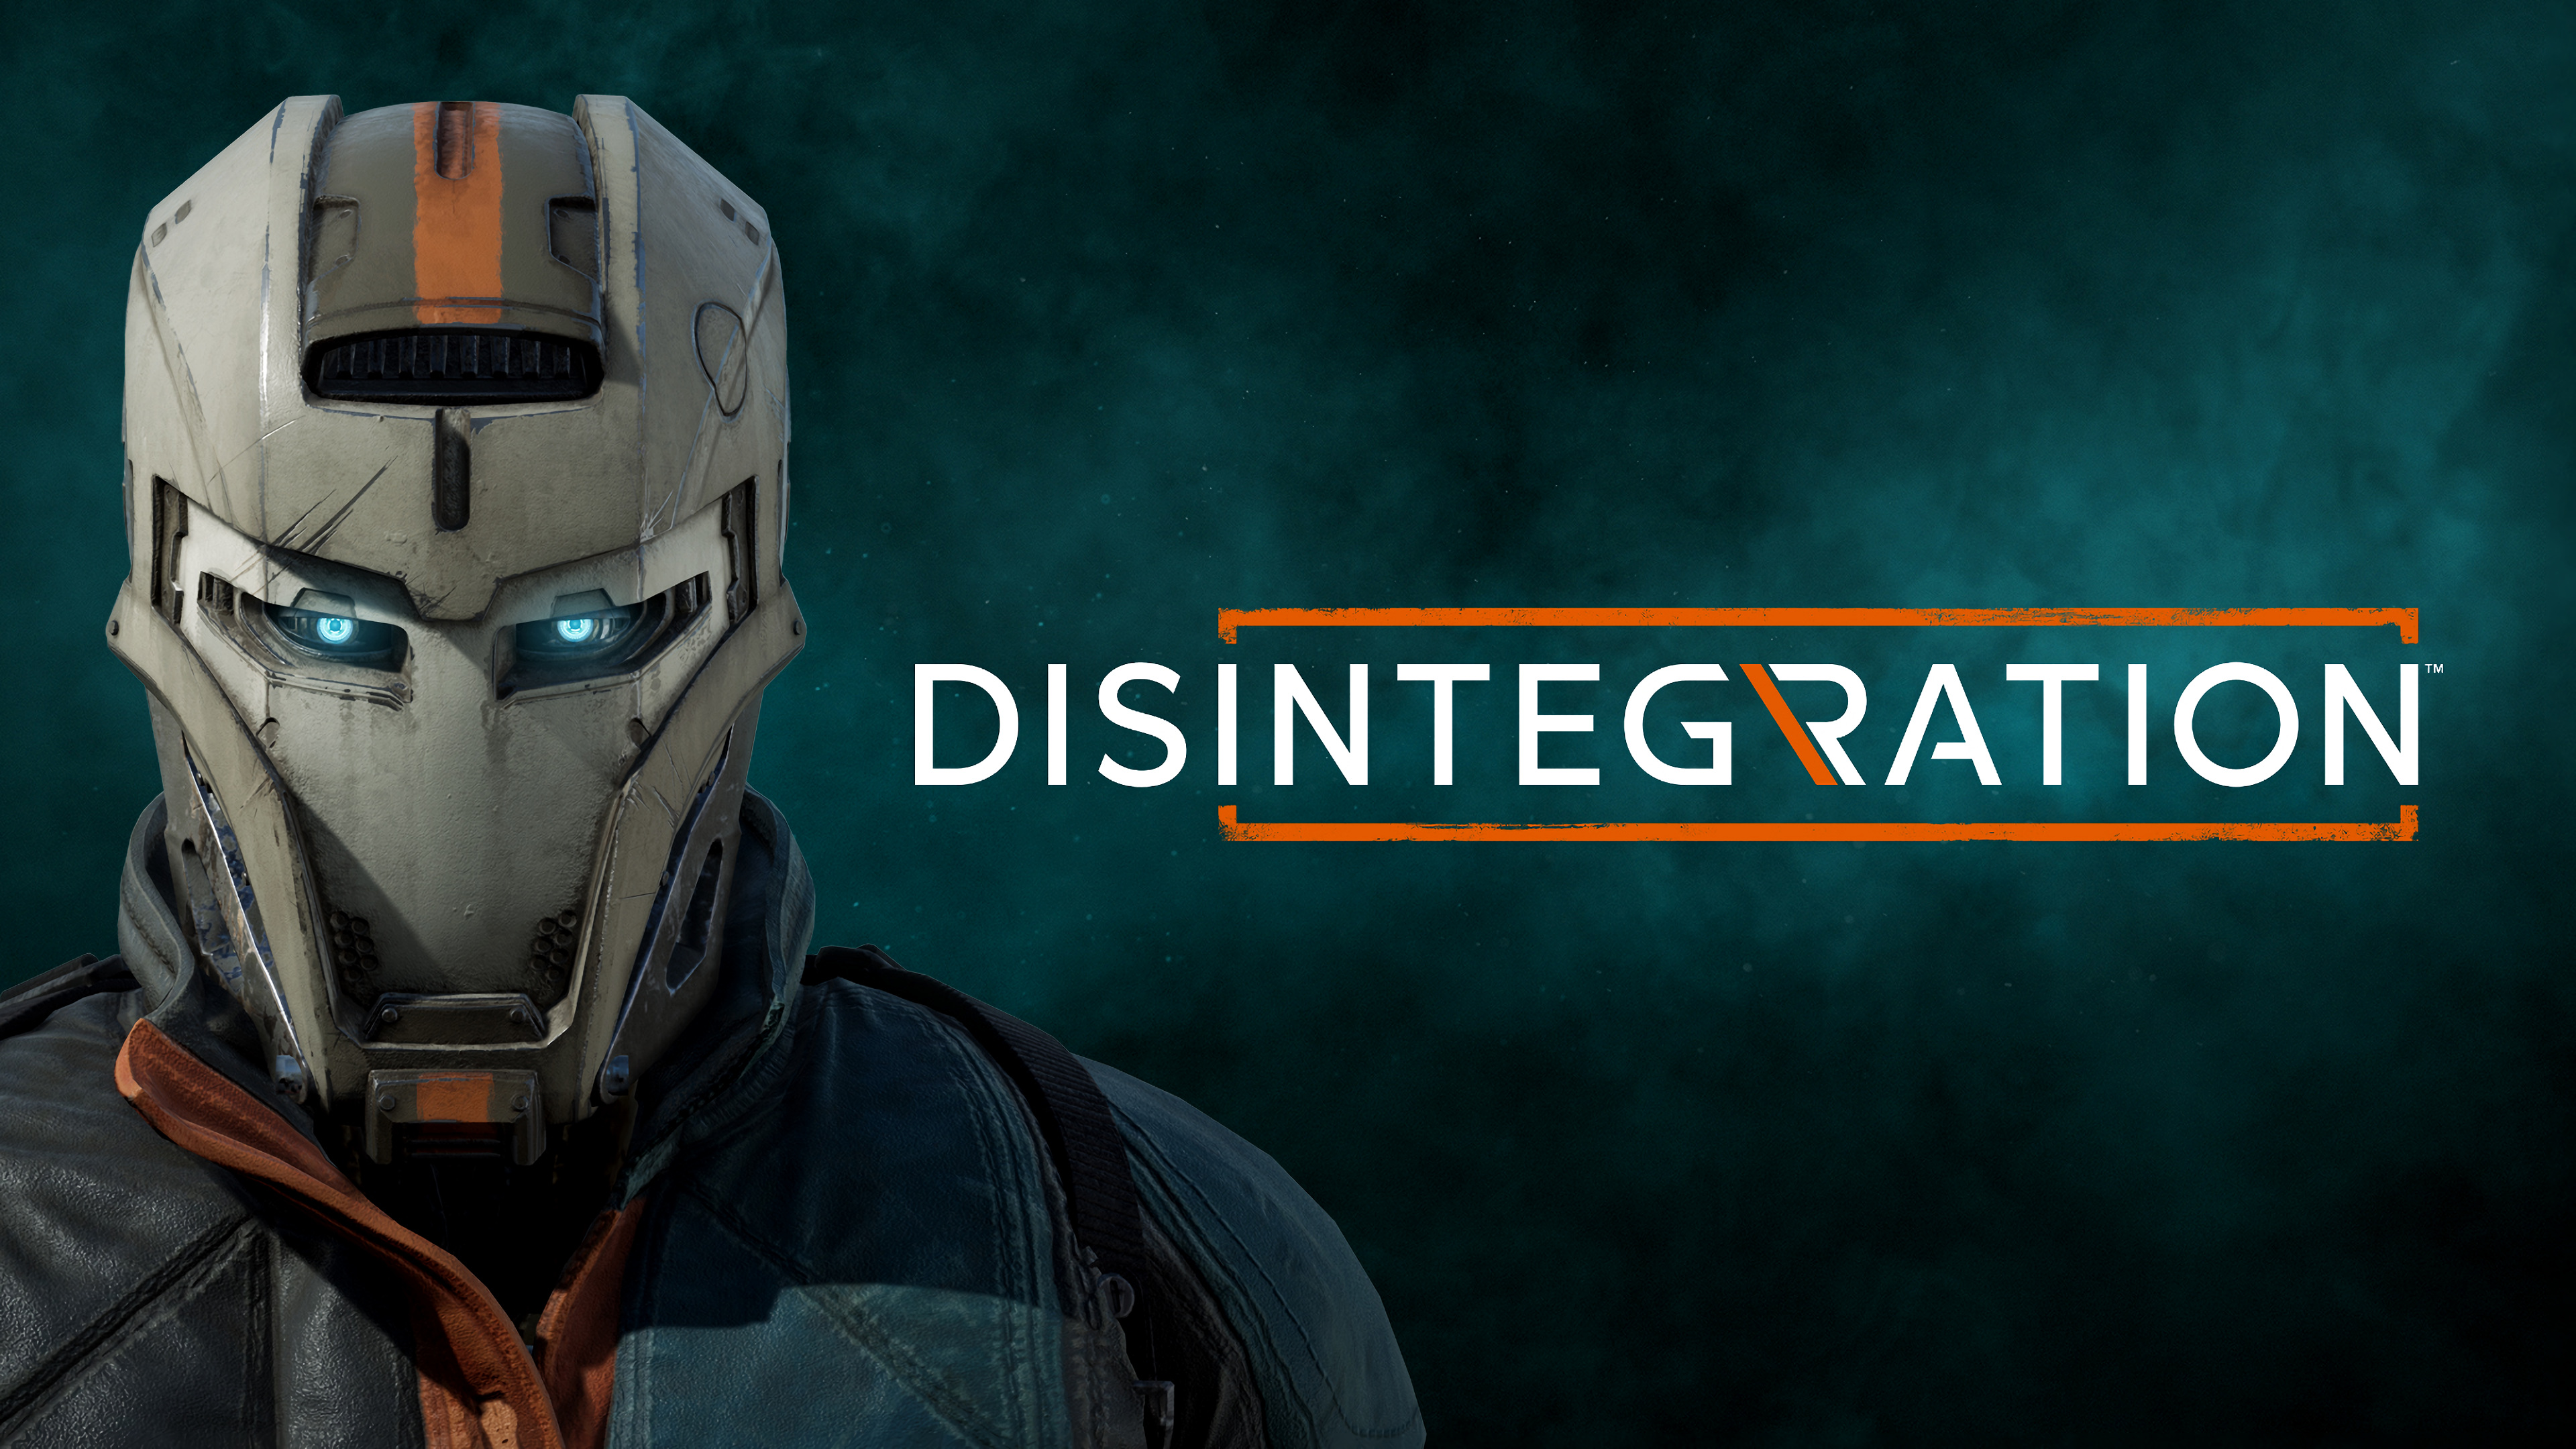 Disintegration 2020 4k Hd Games 4k Wallpapers Images Backgrounds Photos And Pictures